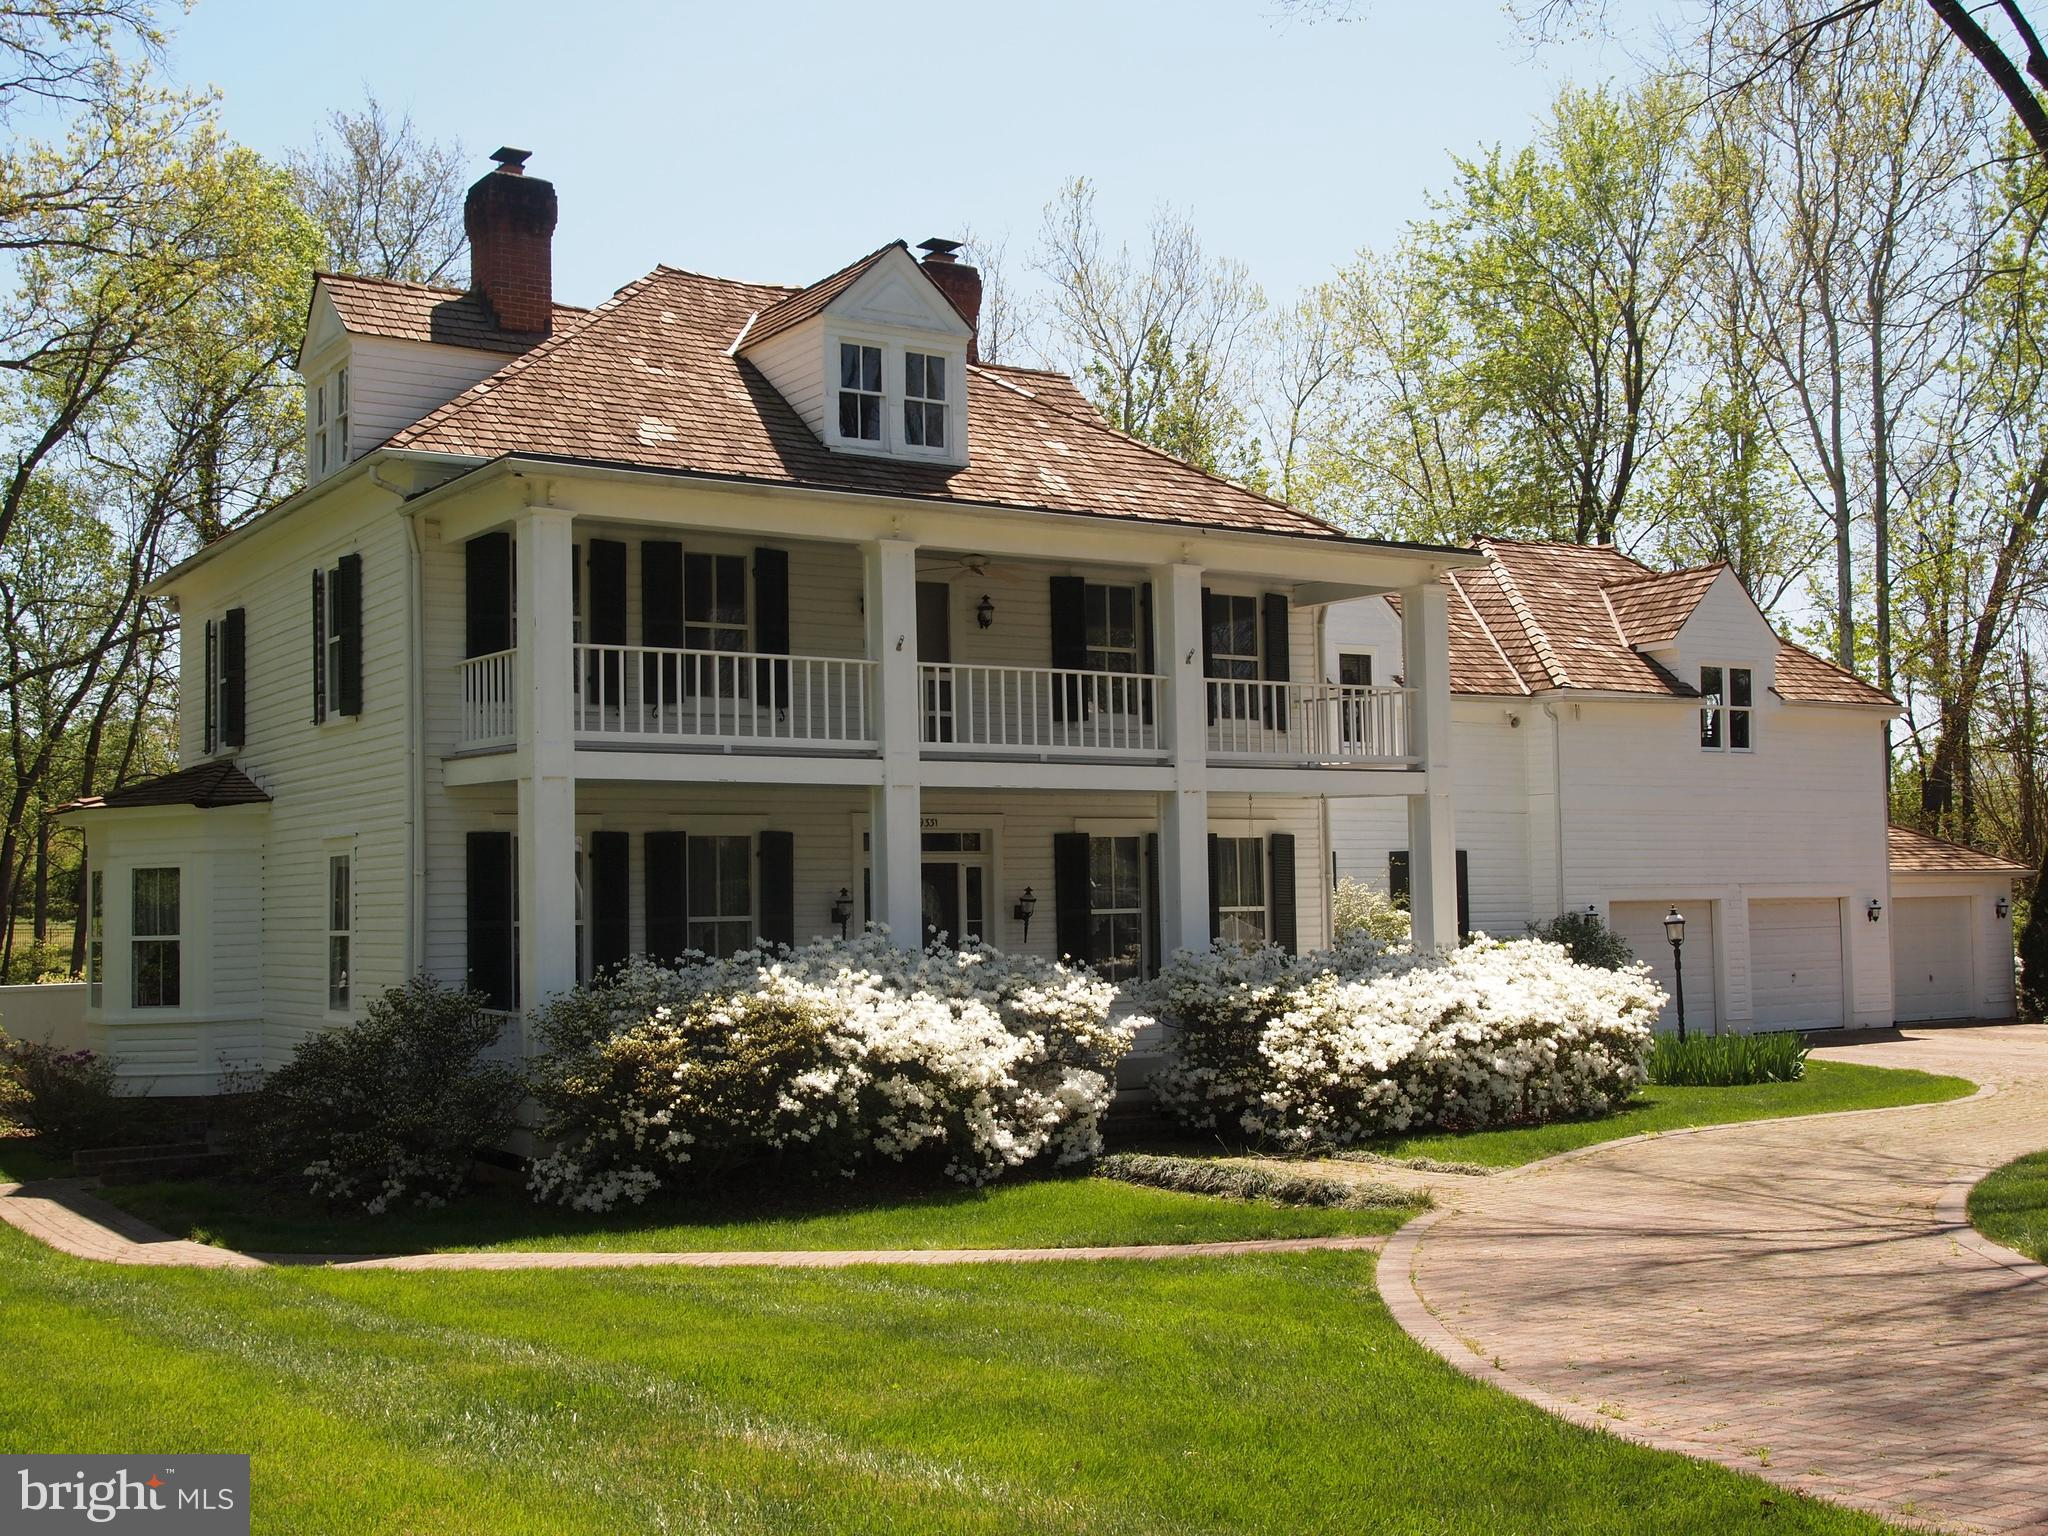 Built in 1898 and once the Burke Hotel, this plantation estate was moved to it's current location in 1981. Home has been restored, renovated and remodeled to include all new finishes, equipment and appliances  Exterior is yellow pine German siding and roof is  cedar shingles; interior includes heart pine wood flooring, 3 fireplaces ( 2 gas & 1 electric); kitchen has Carolina handmade bricks with colonial mortar, mahogany granite, wood cabinets, 2 dishwashers, 2  washer & dryer sets;  lower level has full bath, bedroom, and kitchenette with separate exit; many more unique features; Sited on a beautiful .91 acres with a pool; 3 car garage attached + 2 car garage detached; well maintained on a quiet street; close to VRE, bus routes,Springfield Metro; MUST SEE!